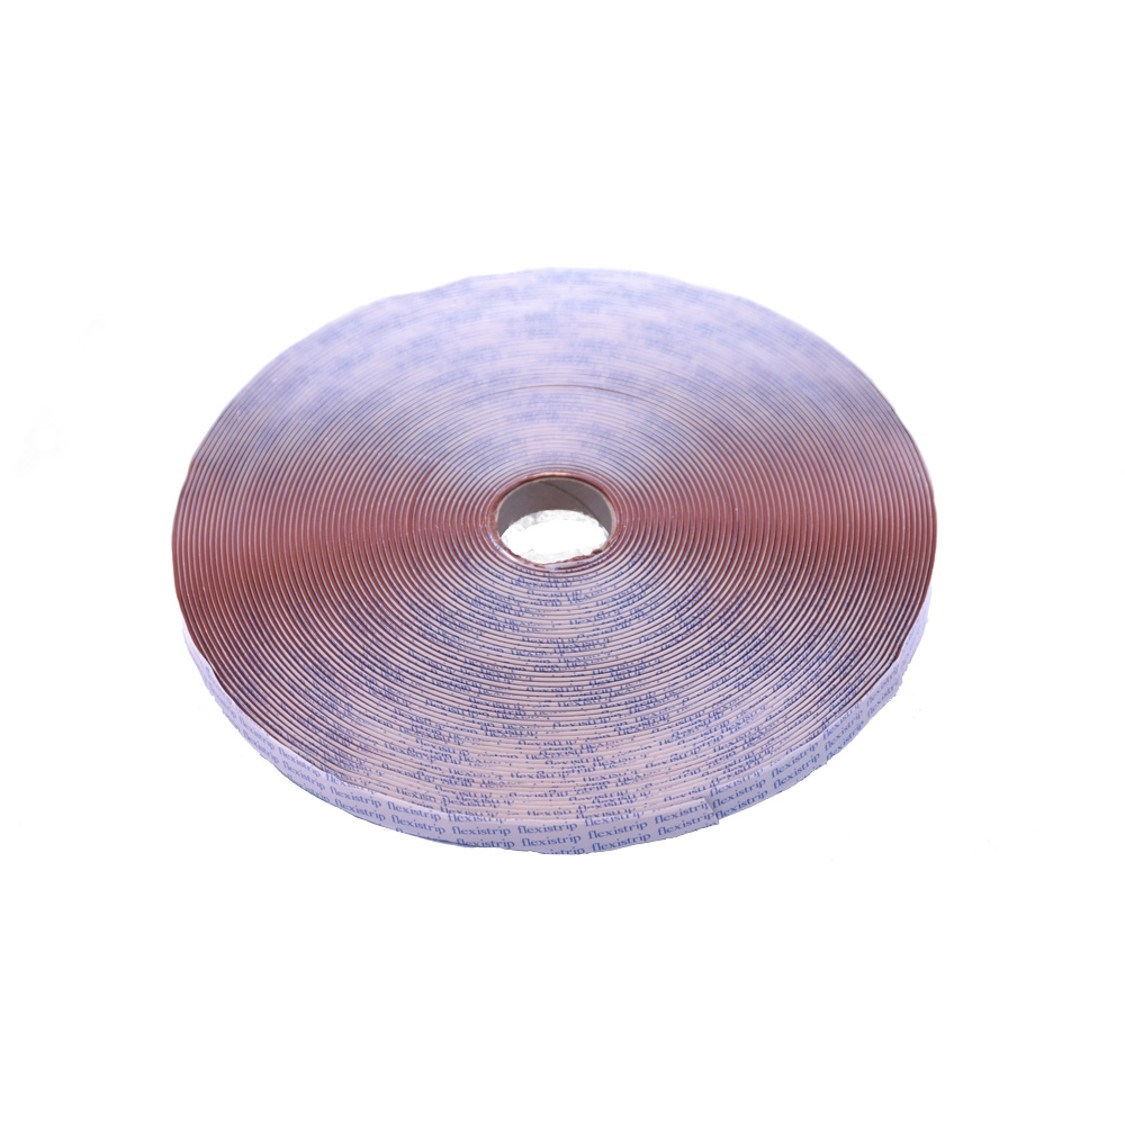 Flexistrip 15 x 2.5mm Mahogany Butyl Glazing Strip (30m Reel)